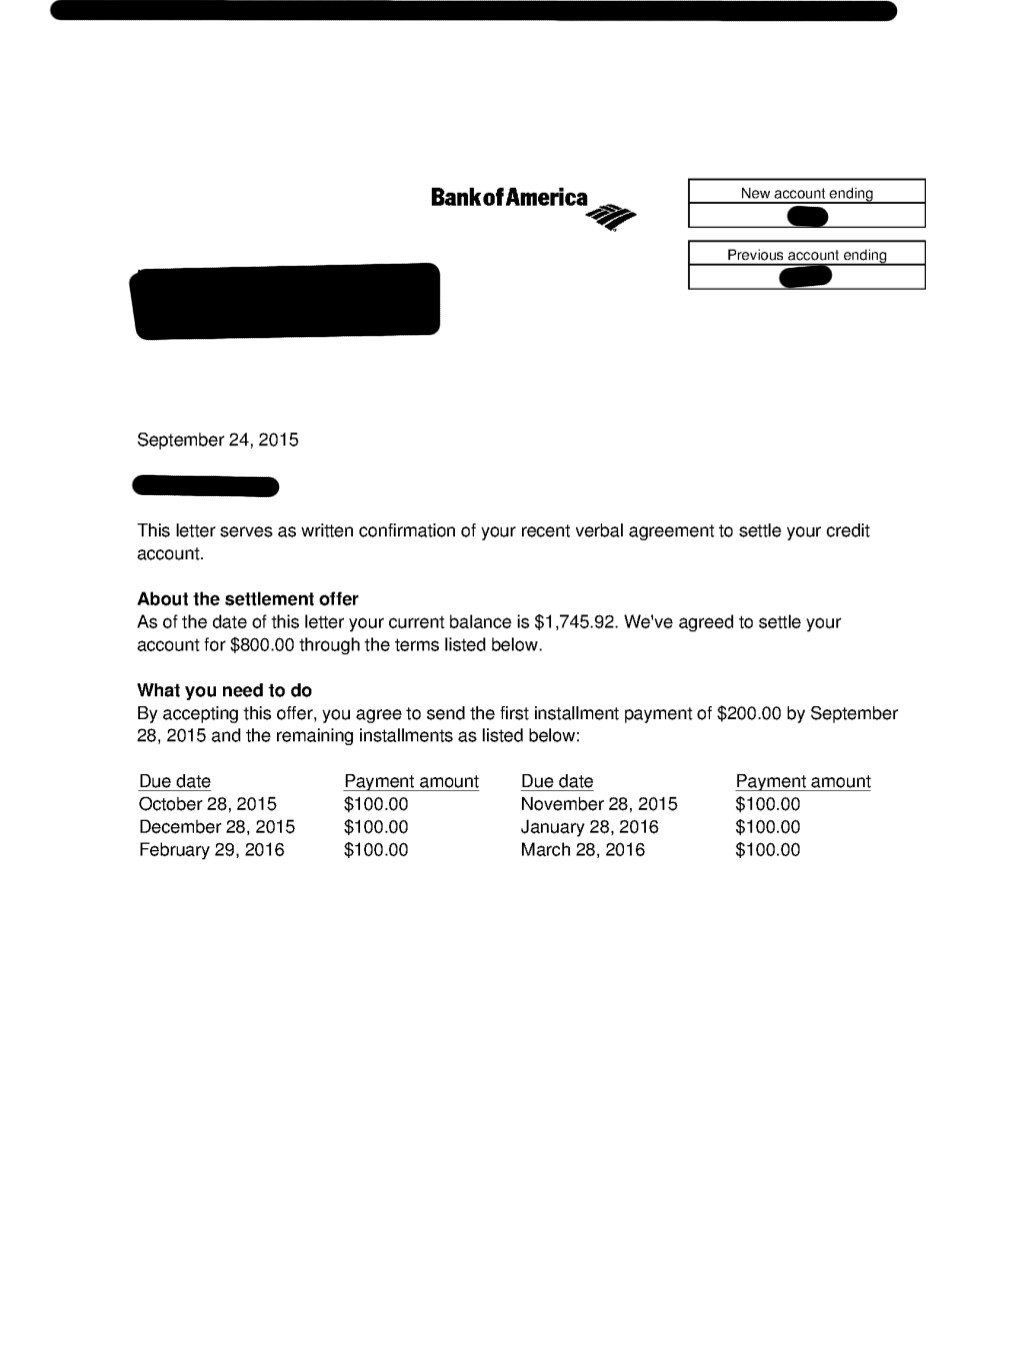 Client KD from RI saved $7645 37 by settling Credit Card and